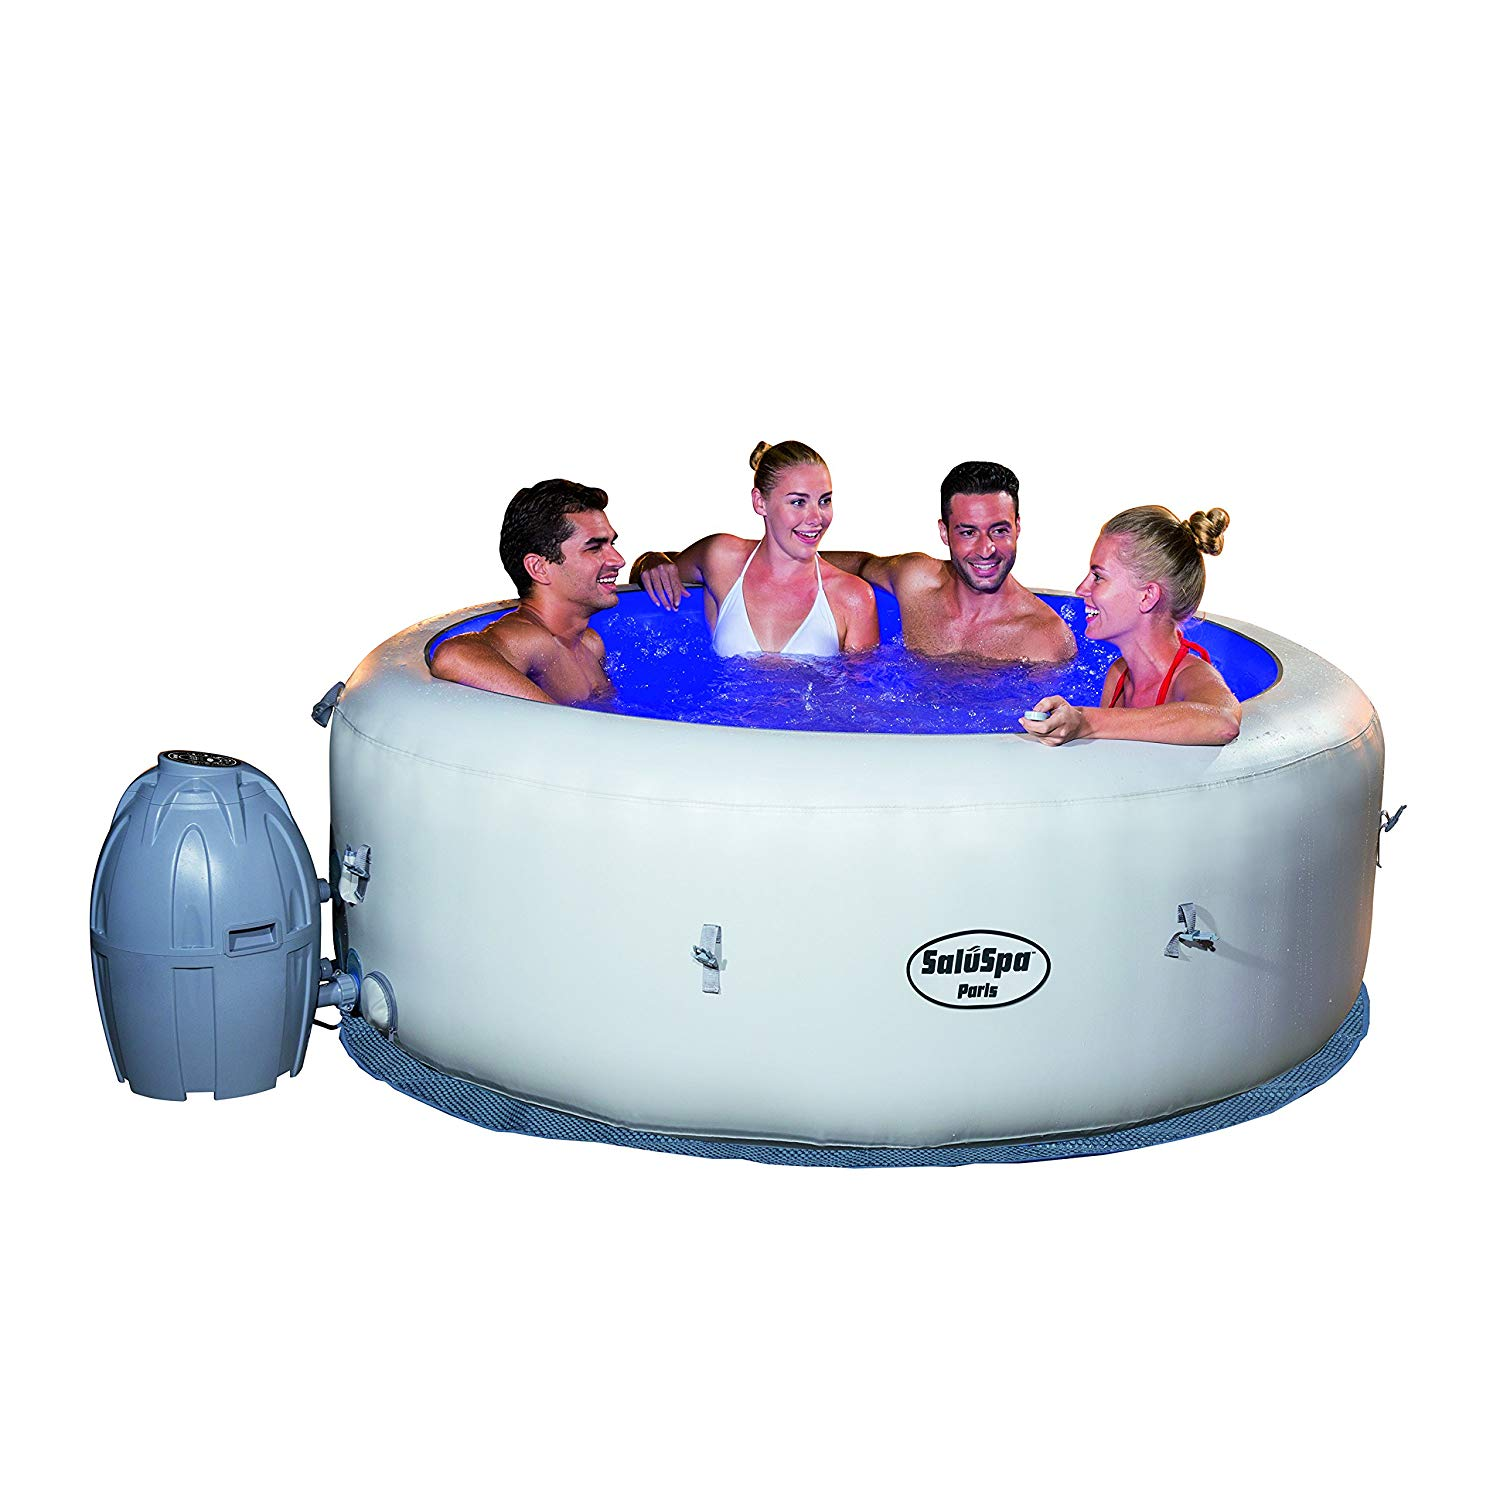 Bestway Paris Air Jet Hot Tub (6 Person)